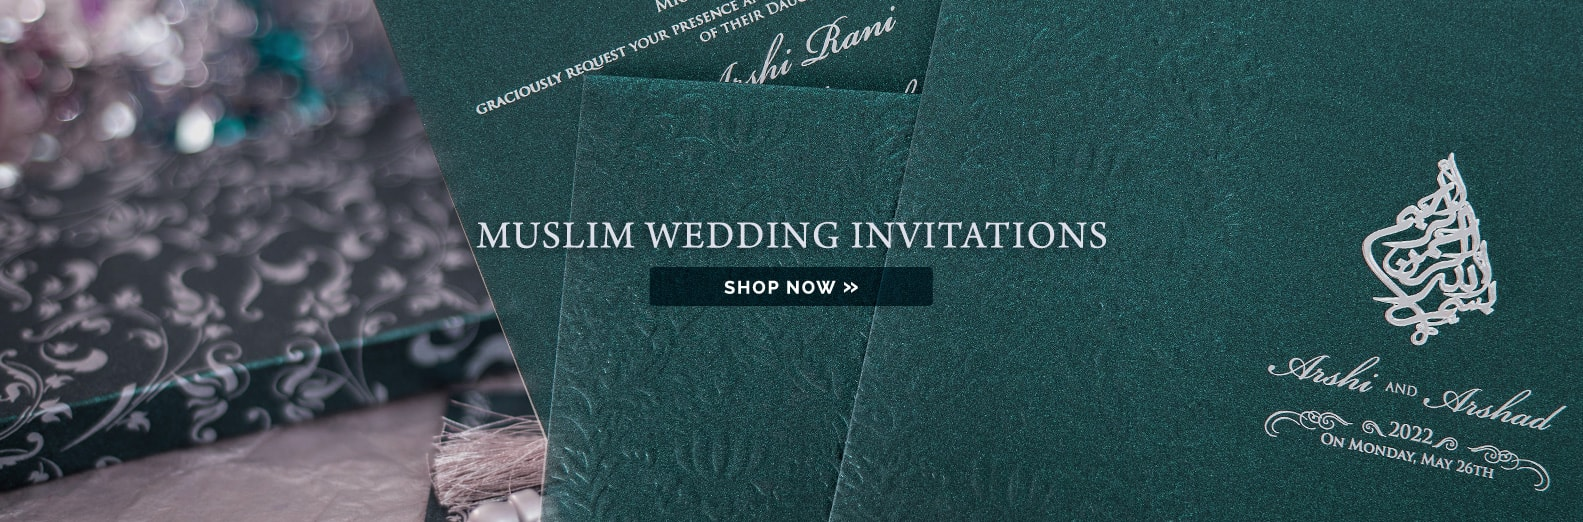 largest collection scroll invitations muslim wedding cards - Muslim Wedding Cards